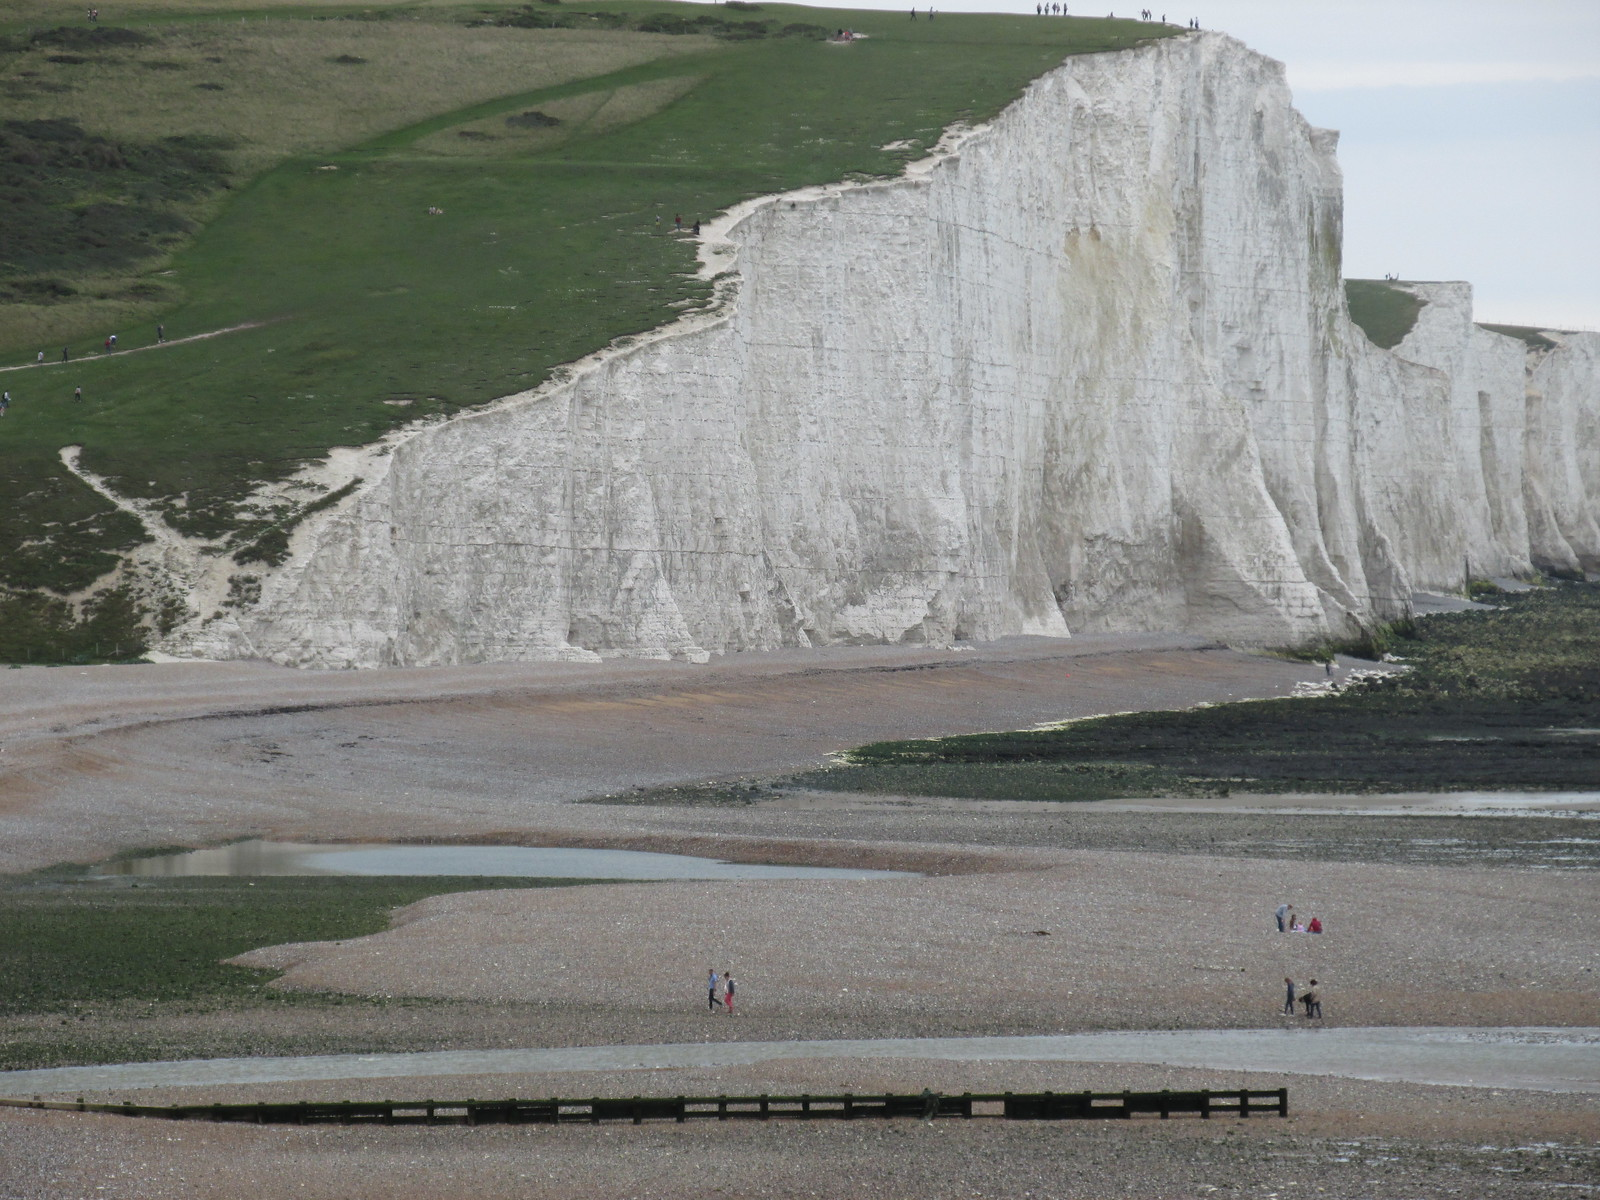 August 29, 2015: Lewes to Seaford Cuckmere Haven